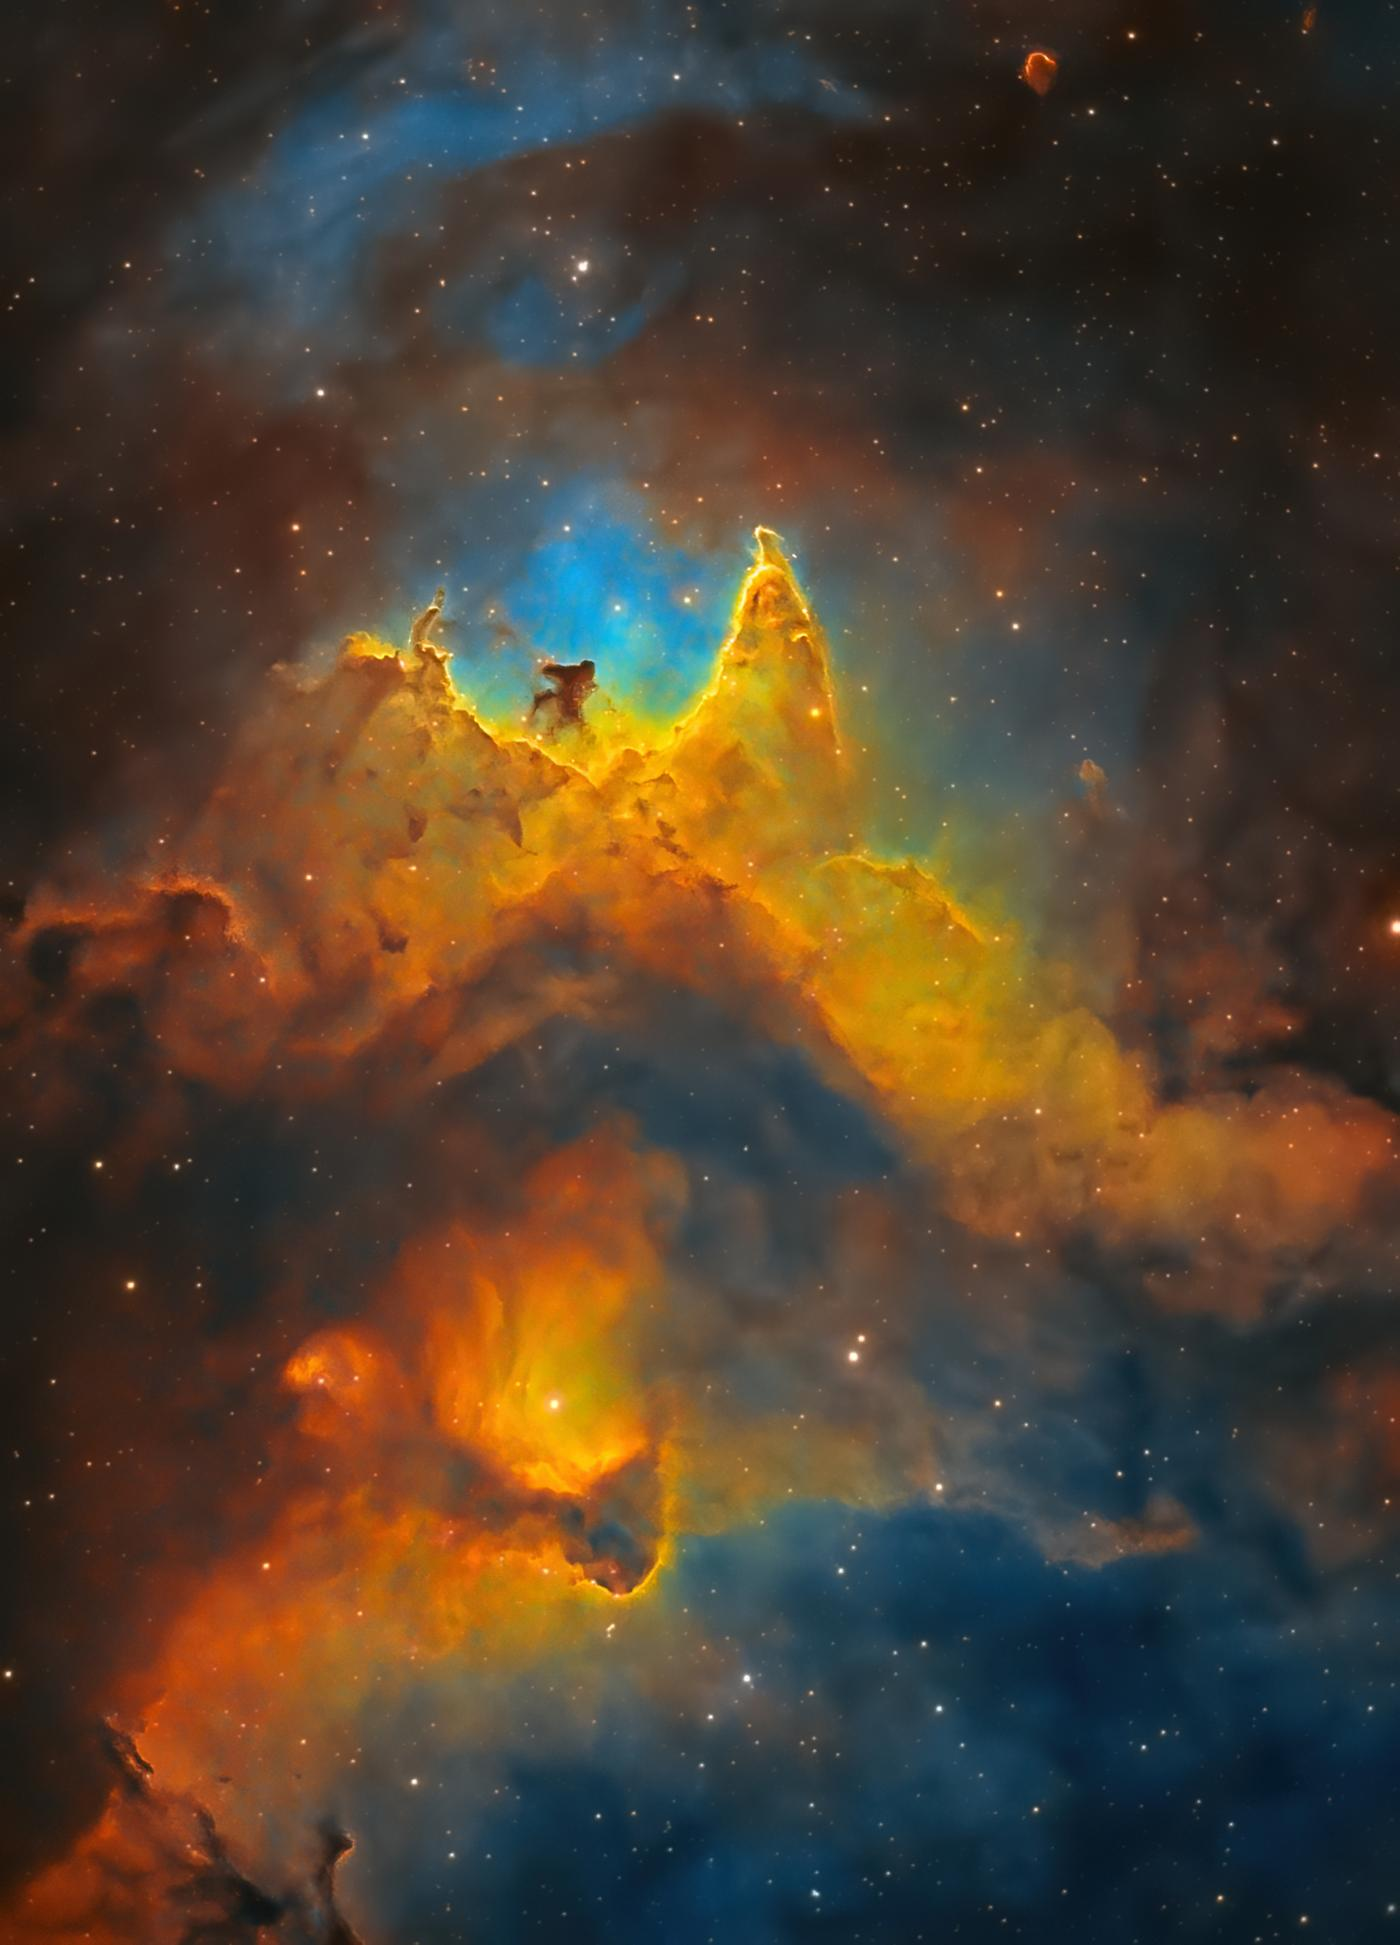 An image showing 'The Soul of Space (Close-up of the Soul Nebula) '